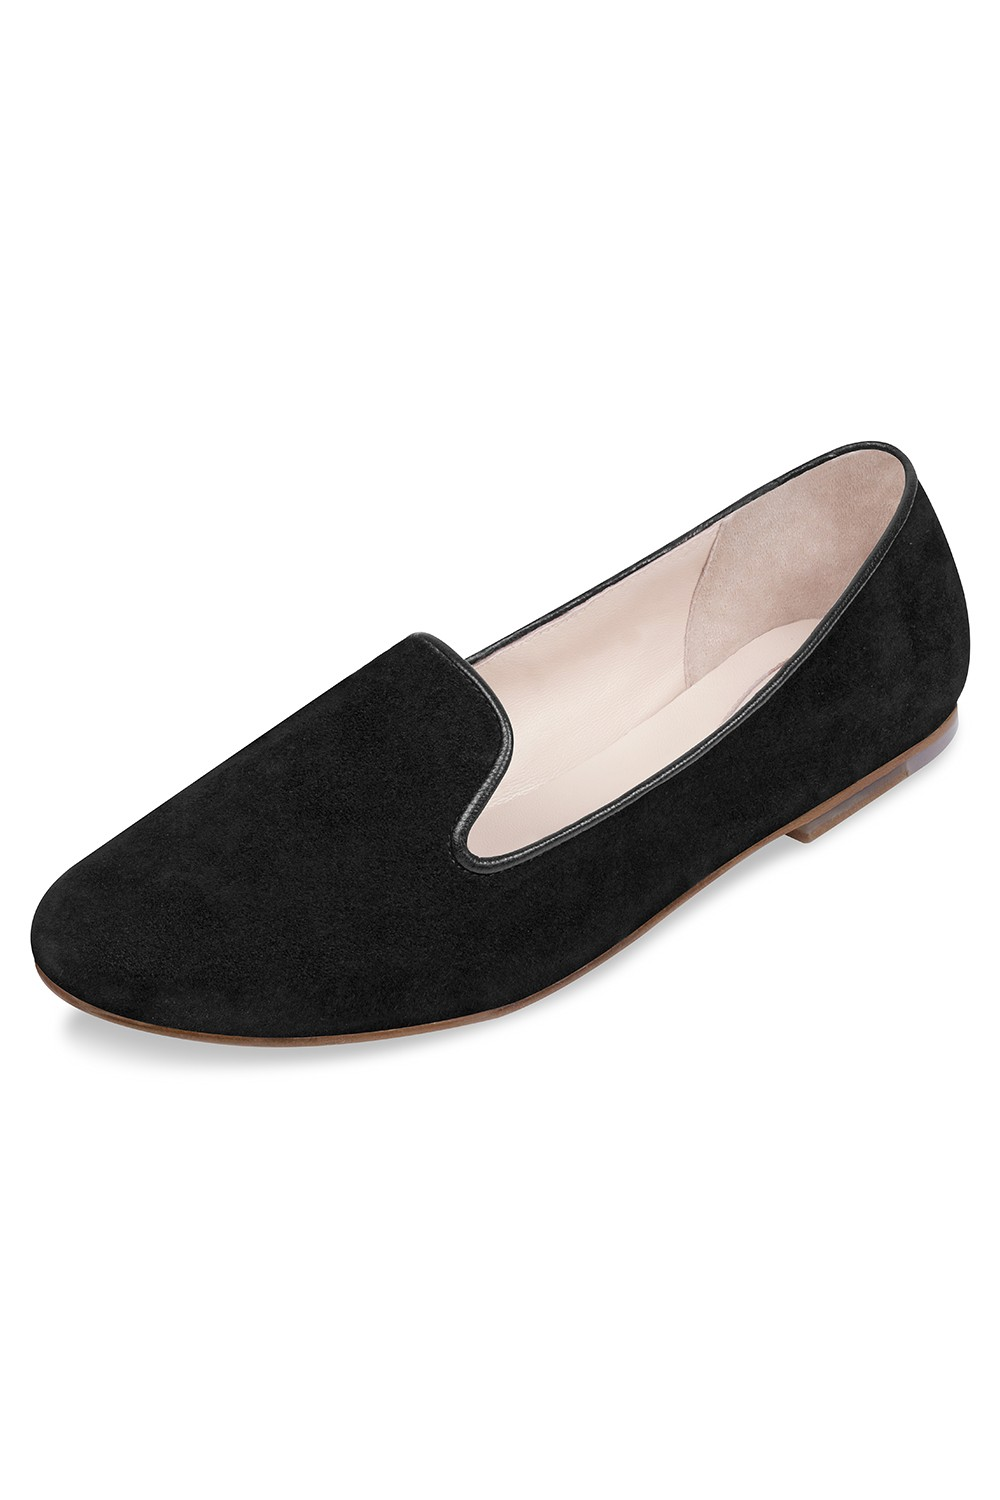 Dorianne Ladies Ballet Flat Womens Fashion Shoes